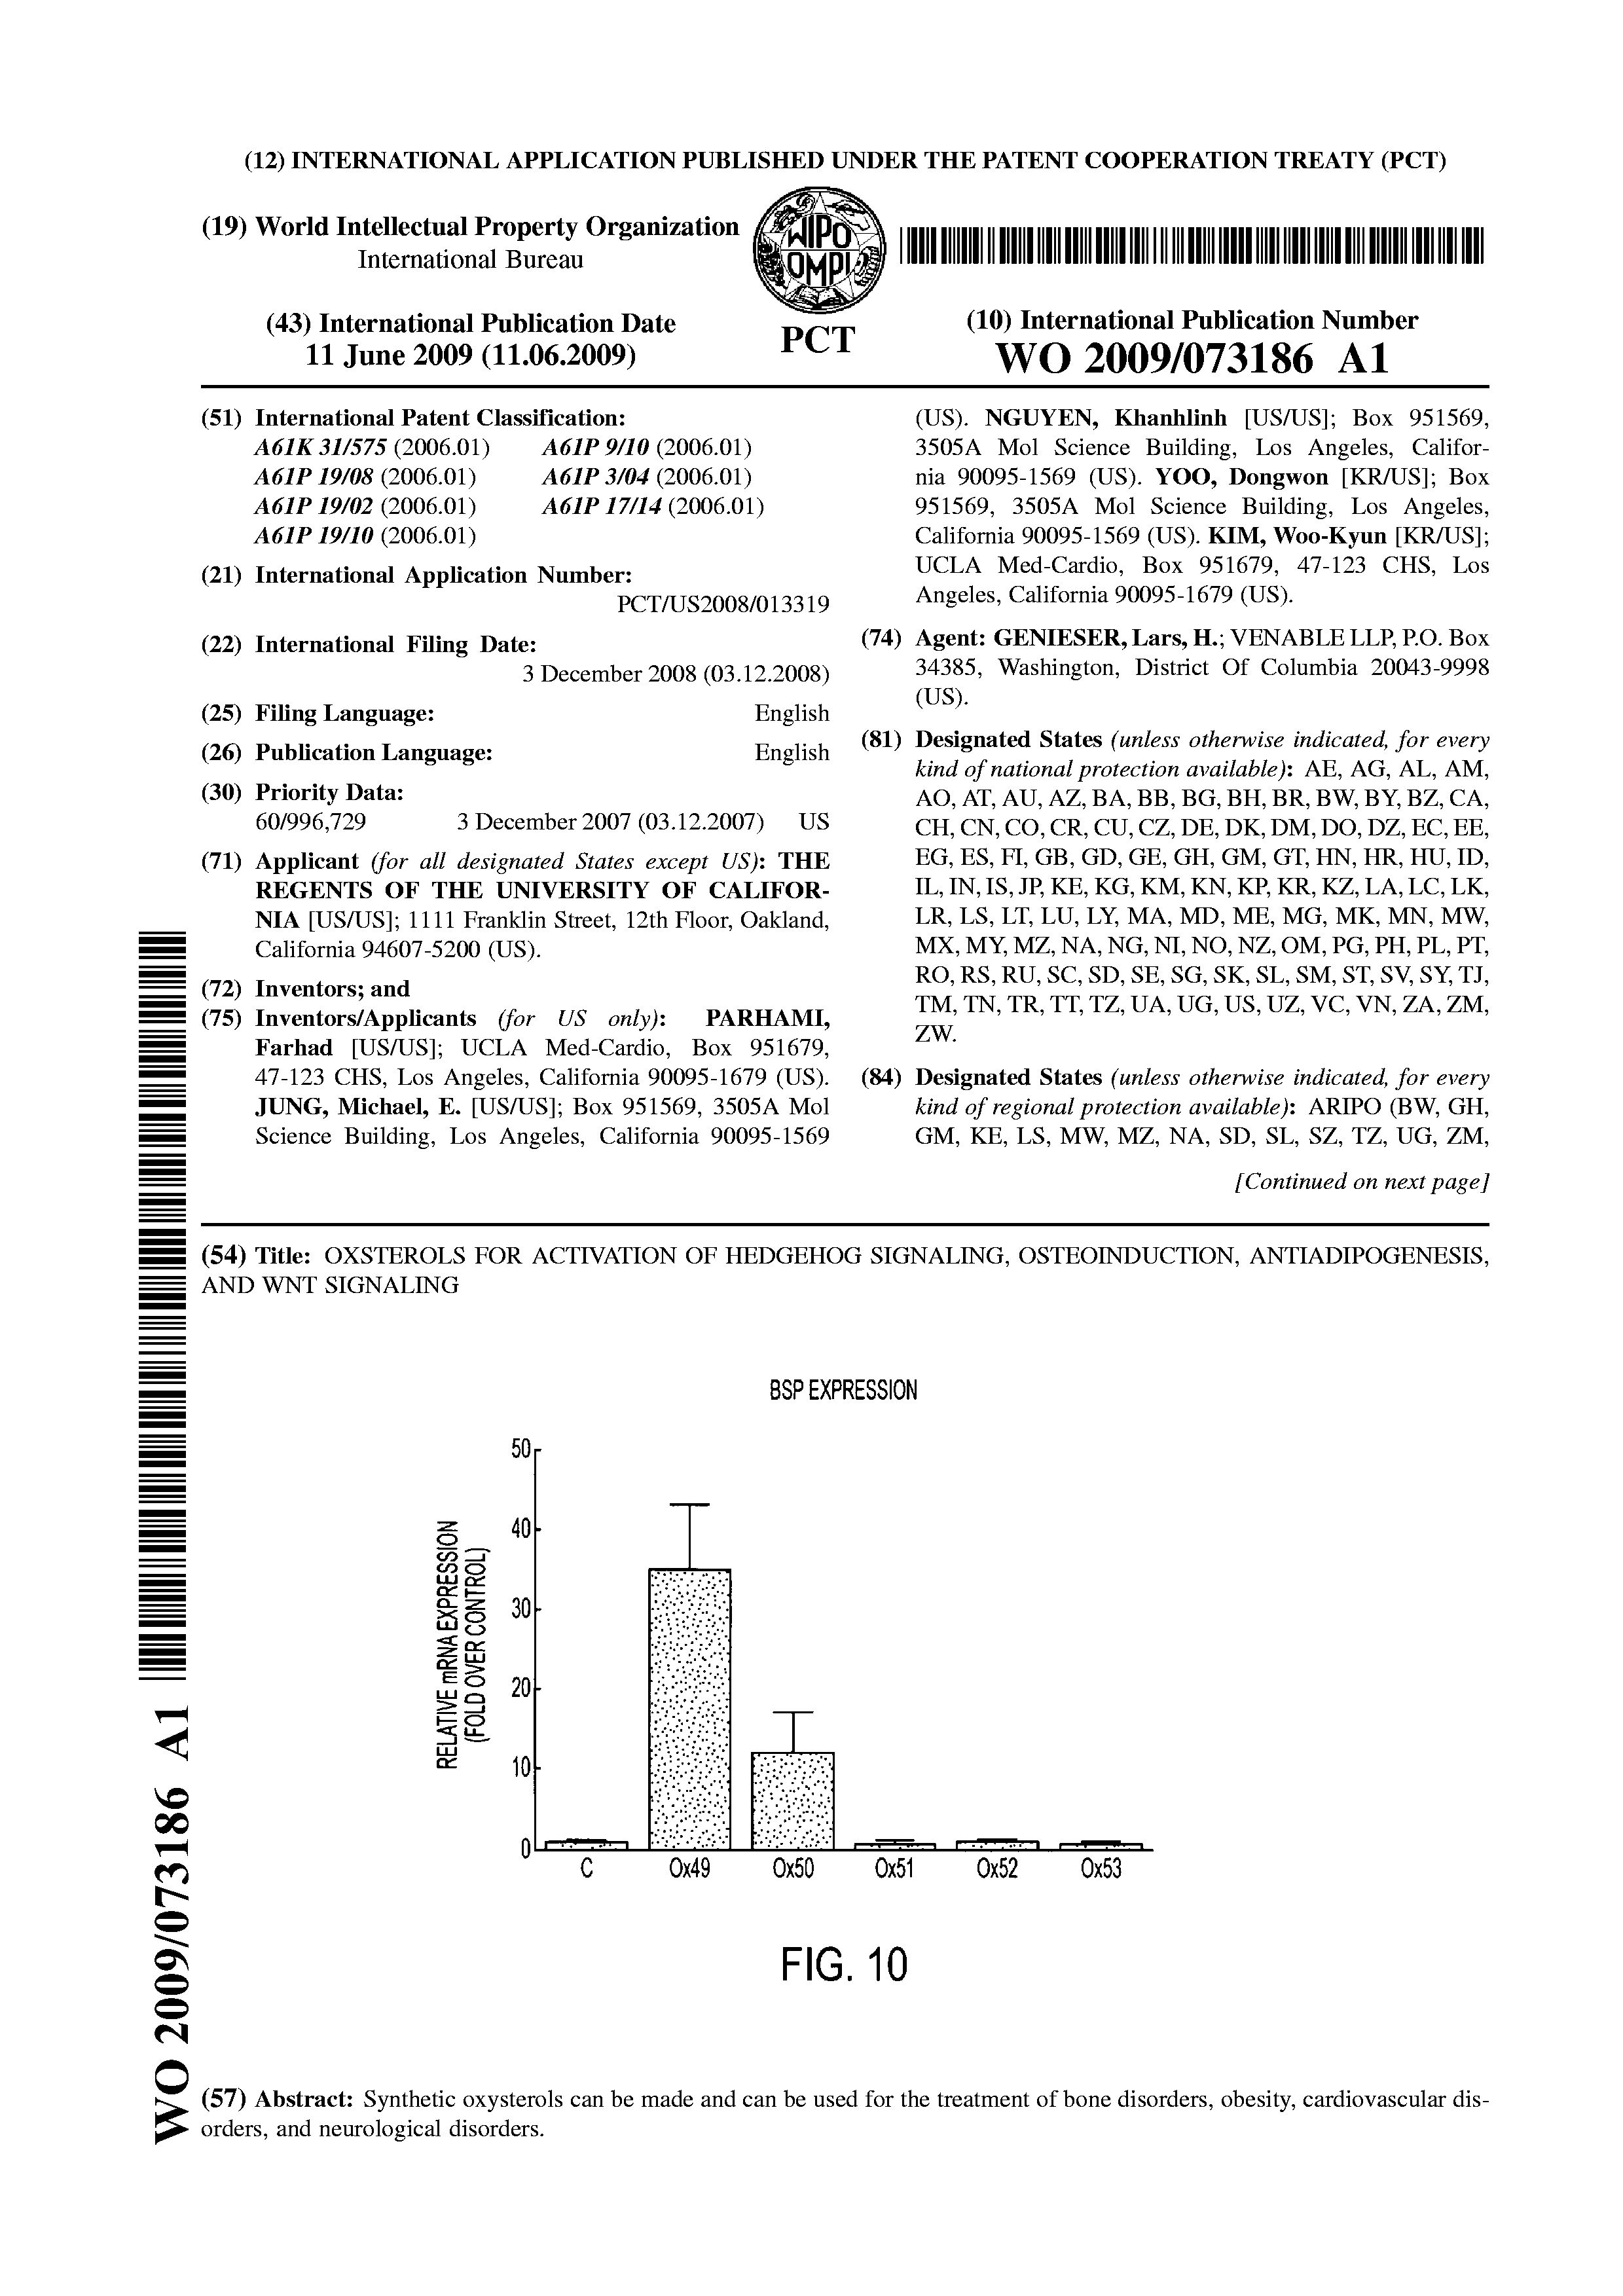 WO 2009/073186 A1 - Oxsterols For Activation Of Hedgehog